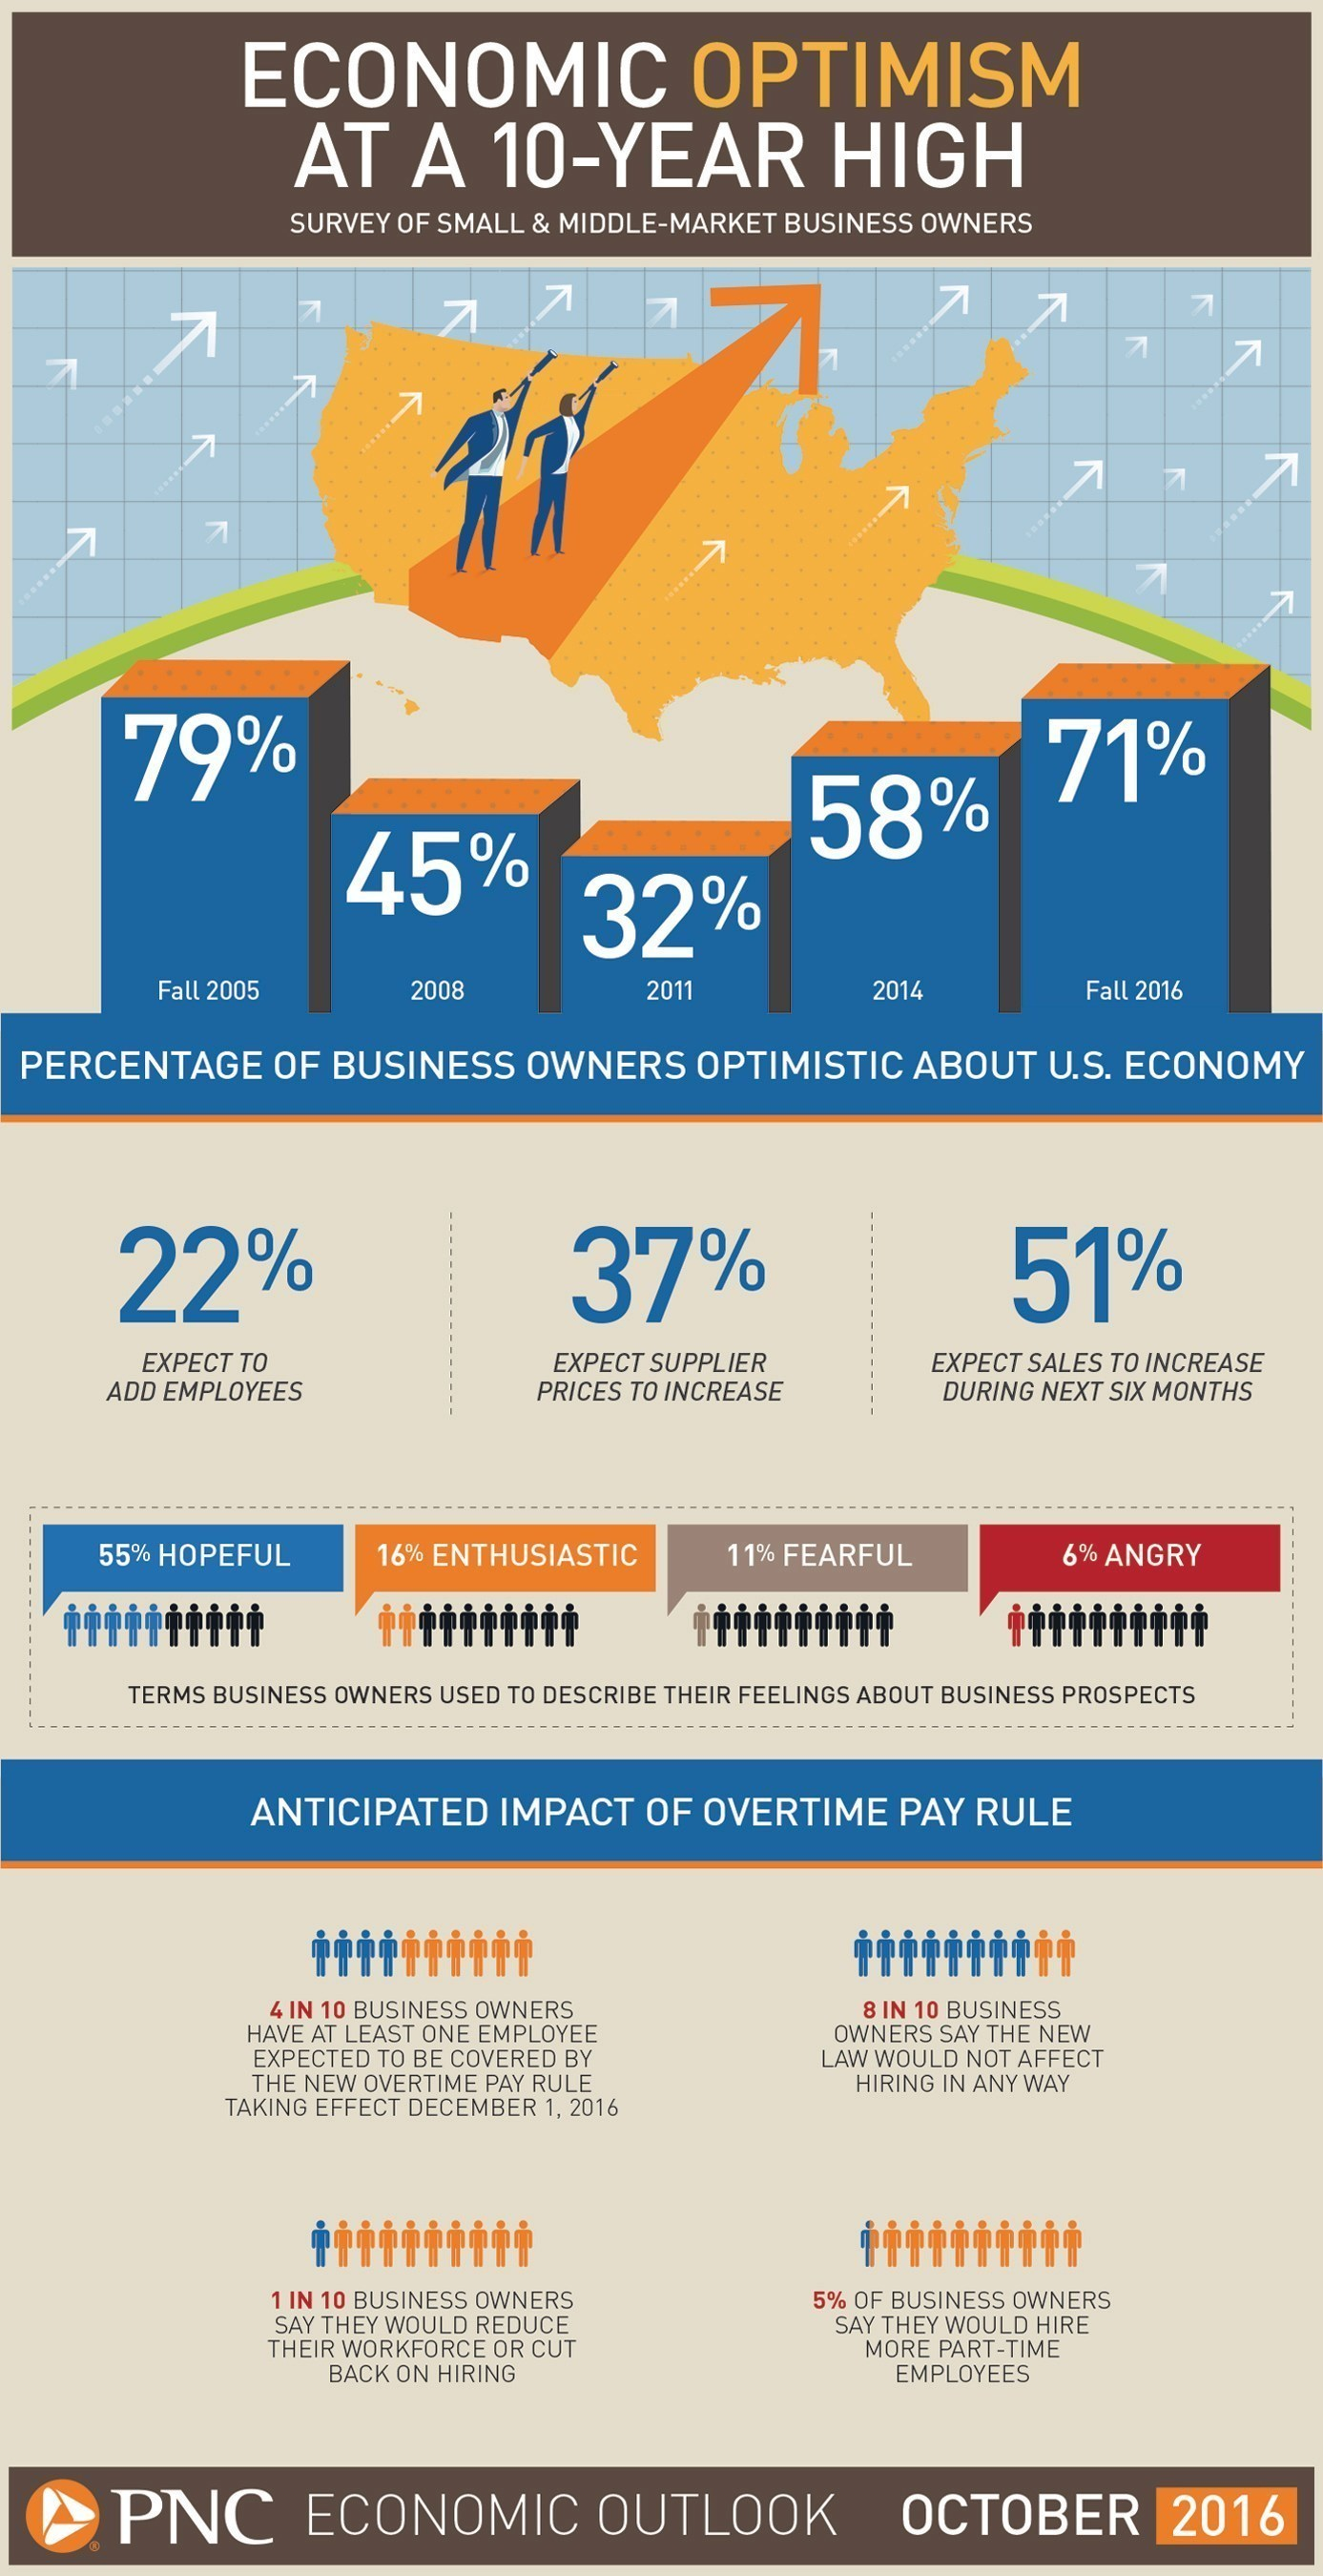 Economic Optimism At A 10-Year High According to PNC Economic Outlook Survey